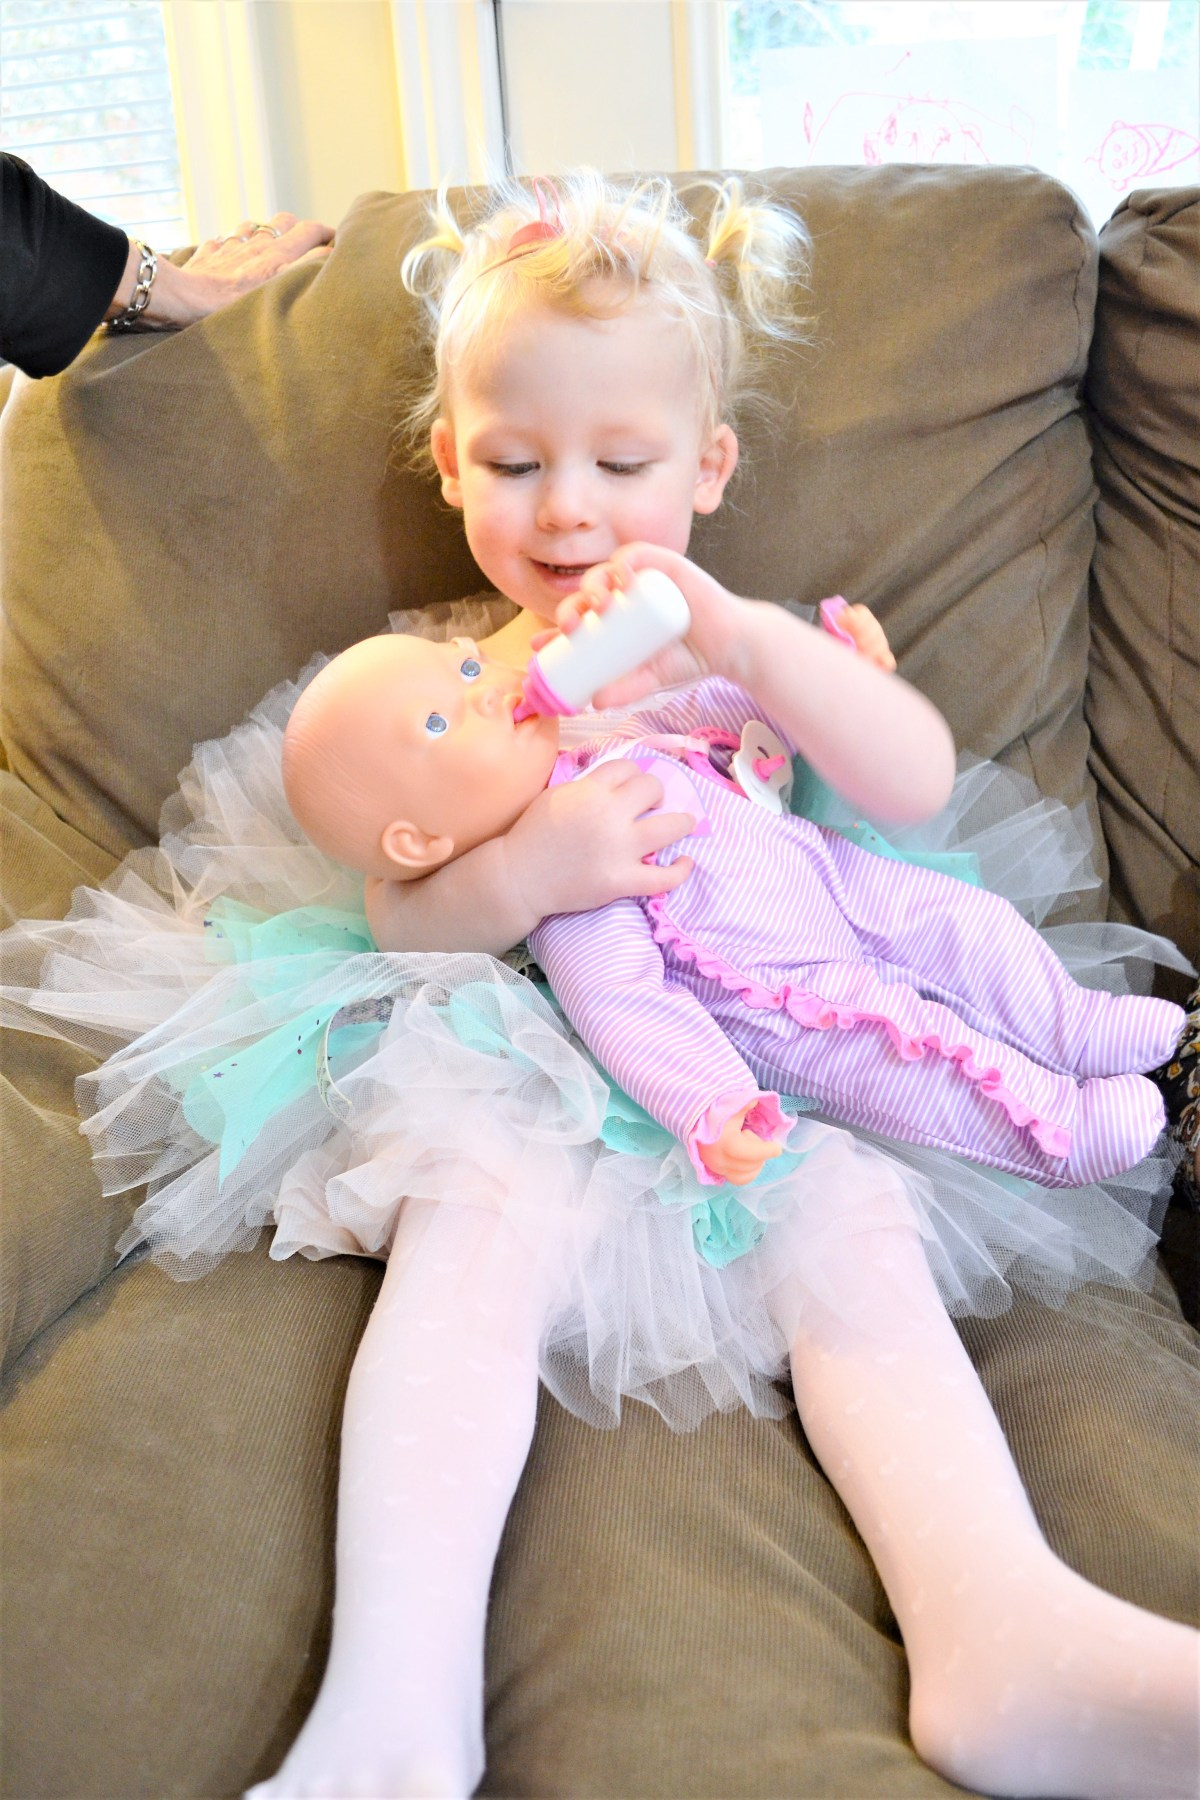 Baby Doll Party Theme - feeding the baby dolls